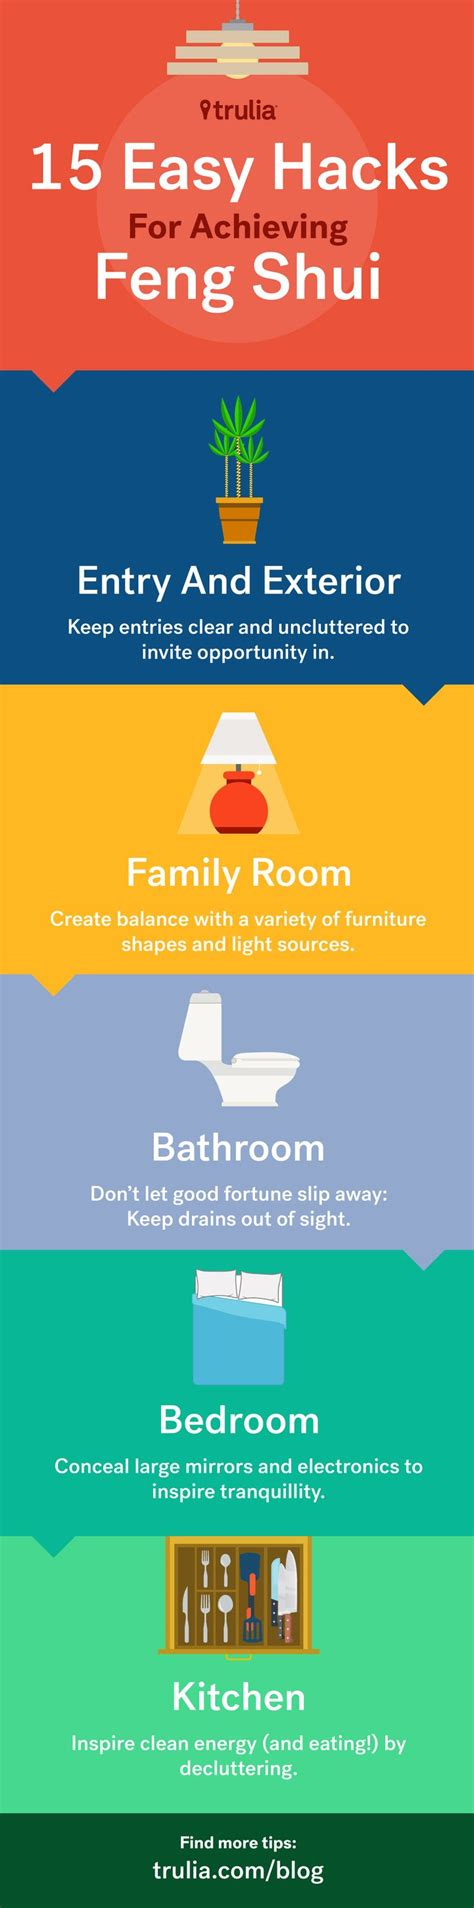 best 25 feng shui ideas only on feng shui bedroom feng shui decorating and feng